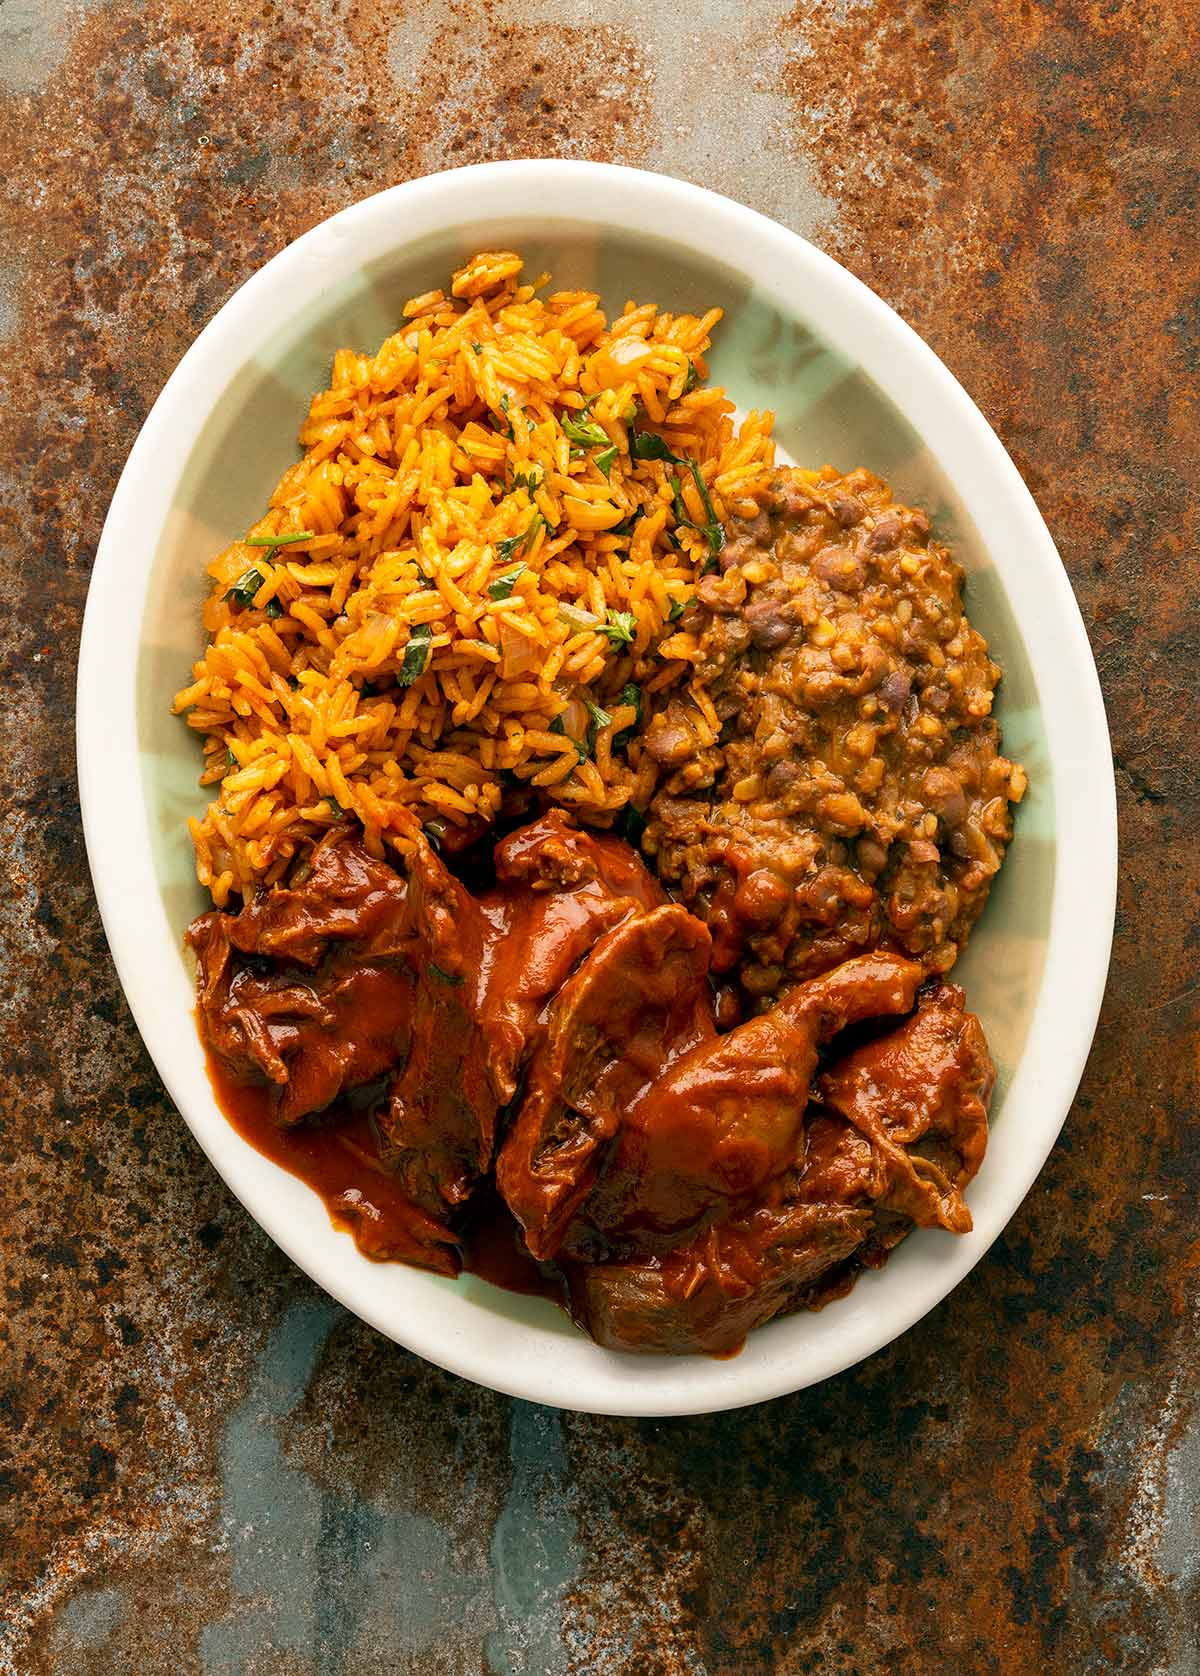 Sonoran carne con chile on a plate with rice and beans